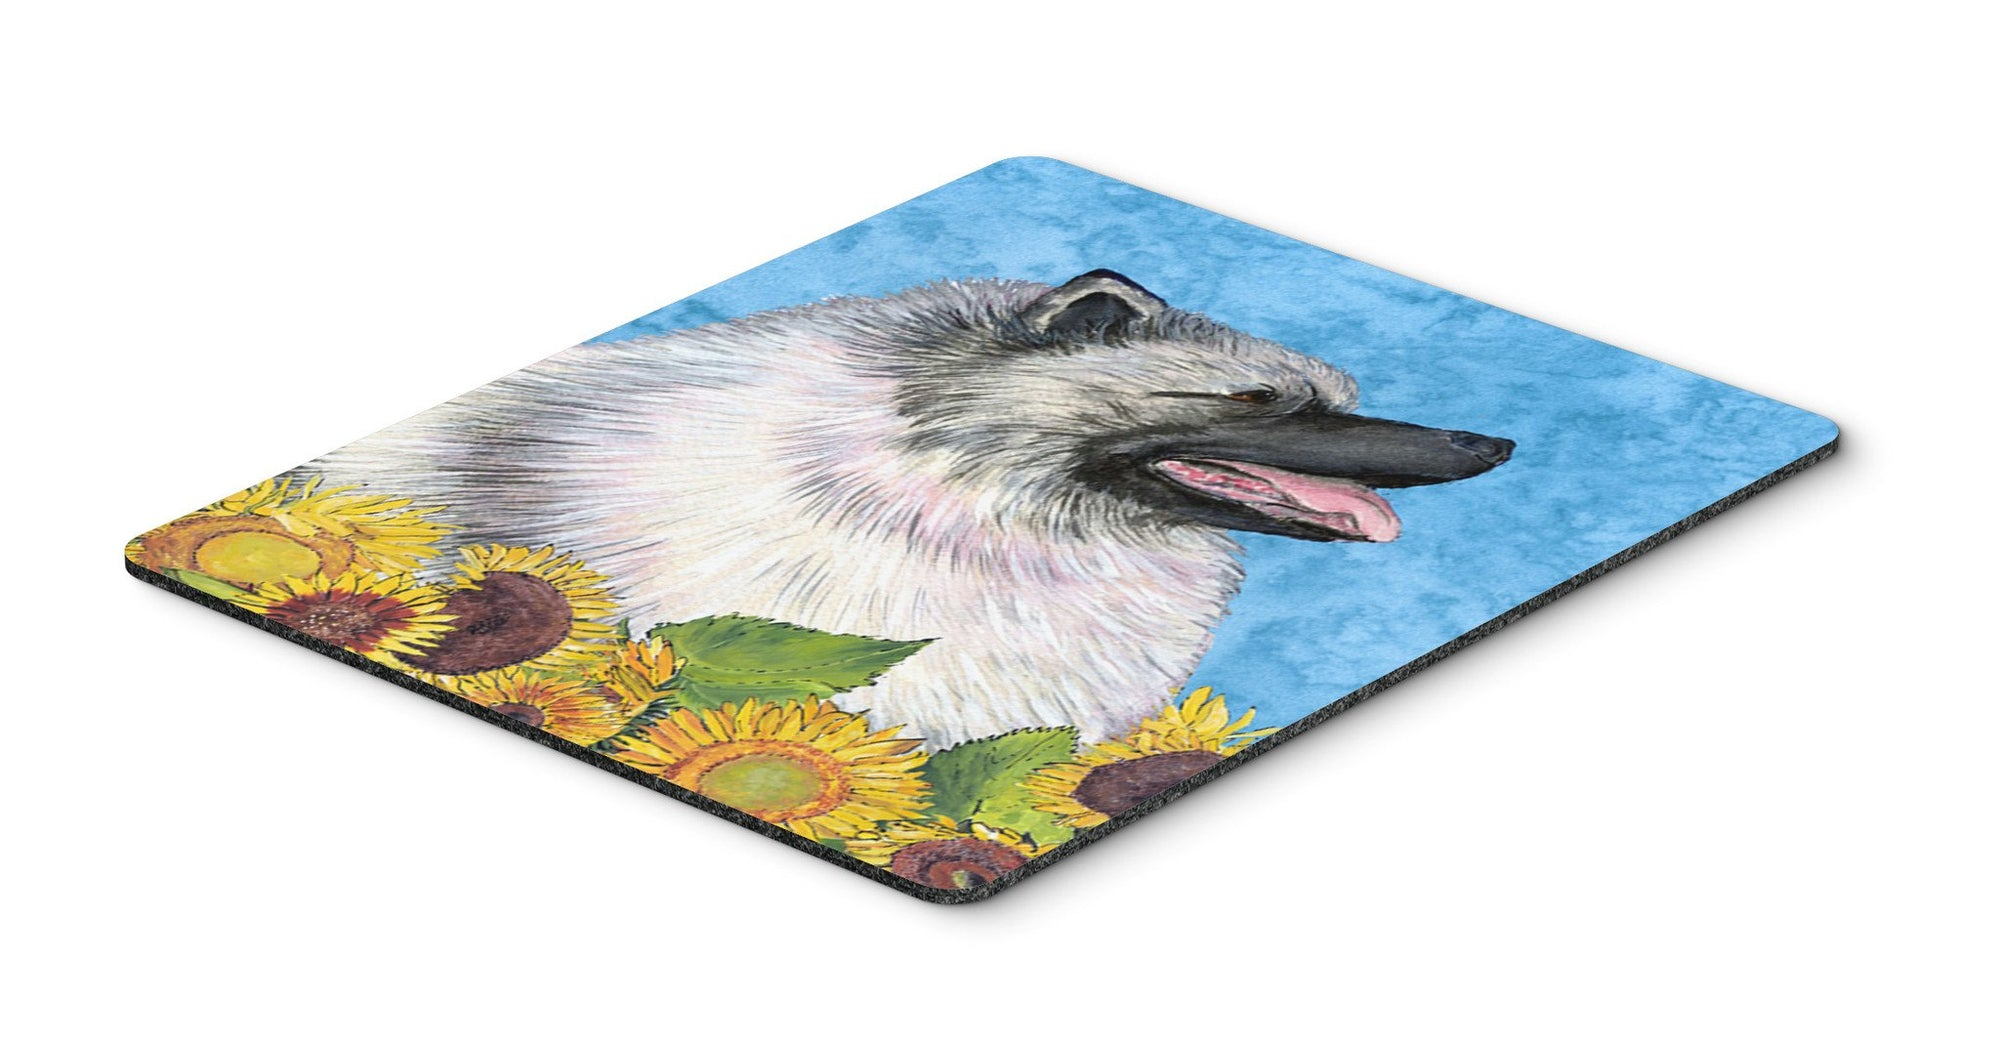 Keeshond Mouse Pad, Hot Pad or Trivet by Caroline's Treasures